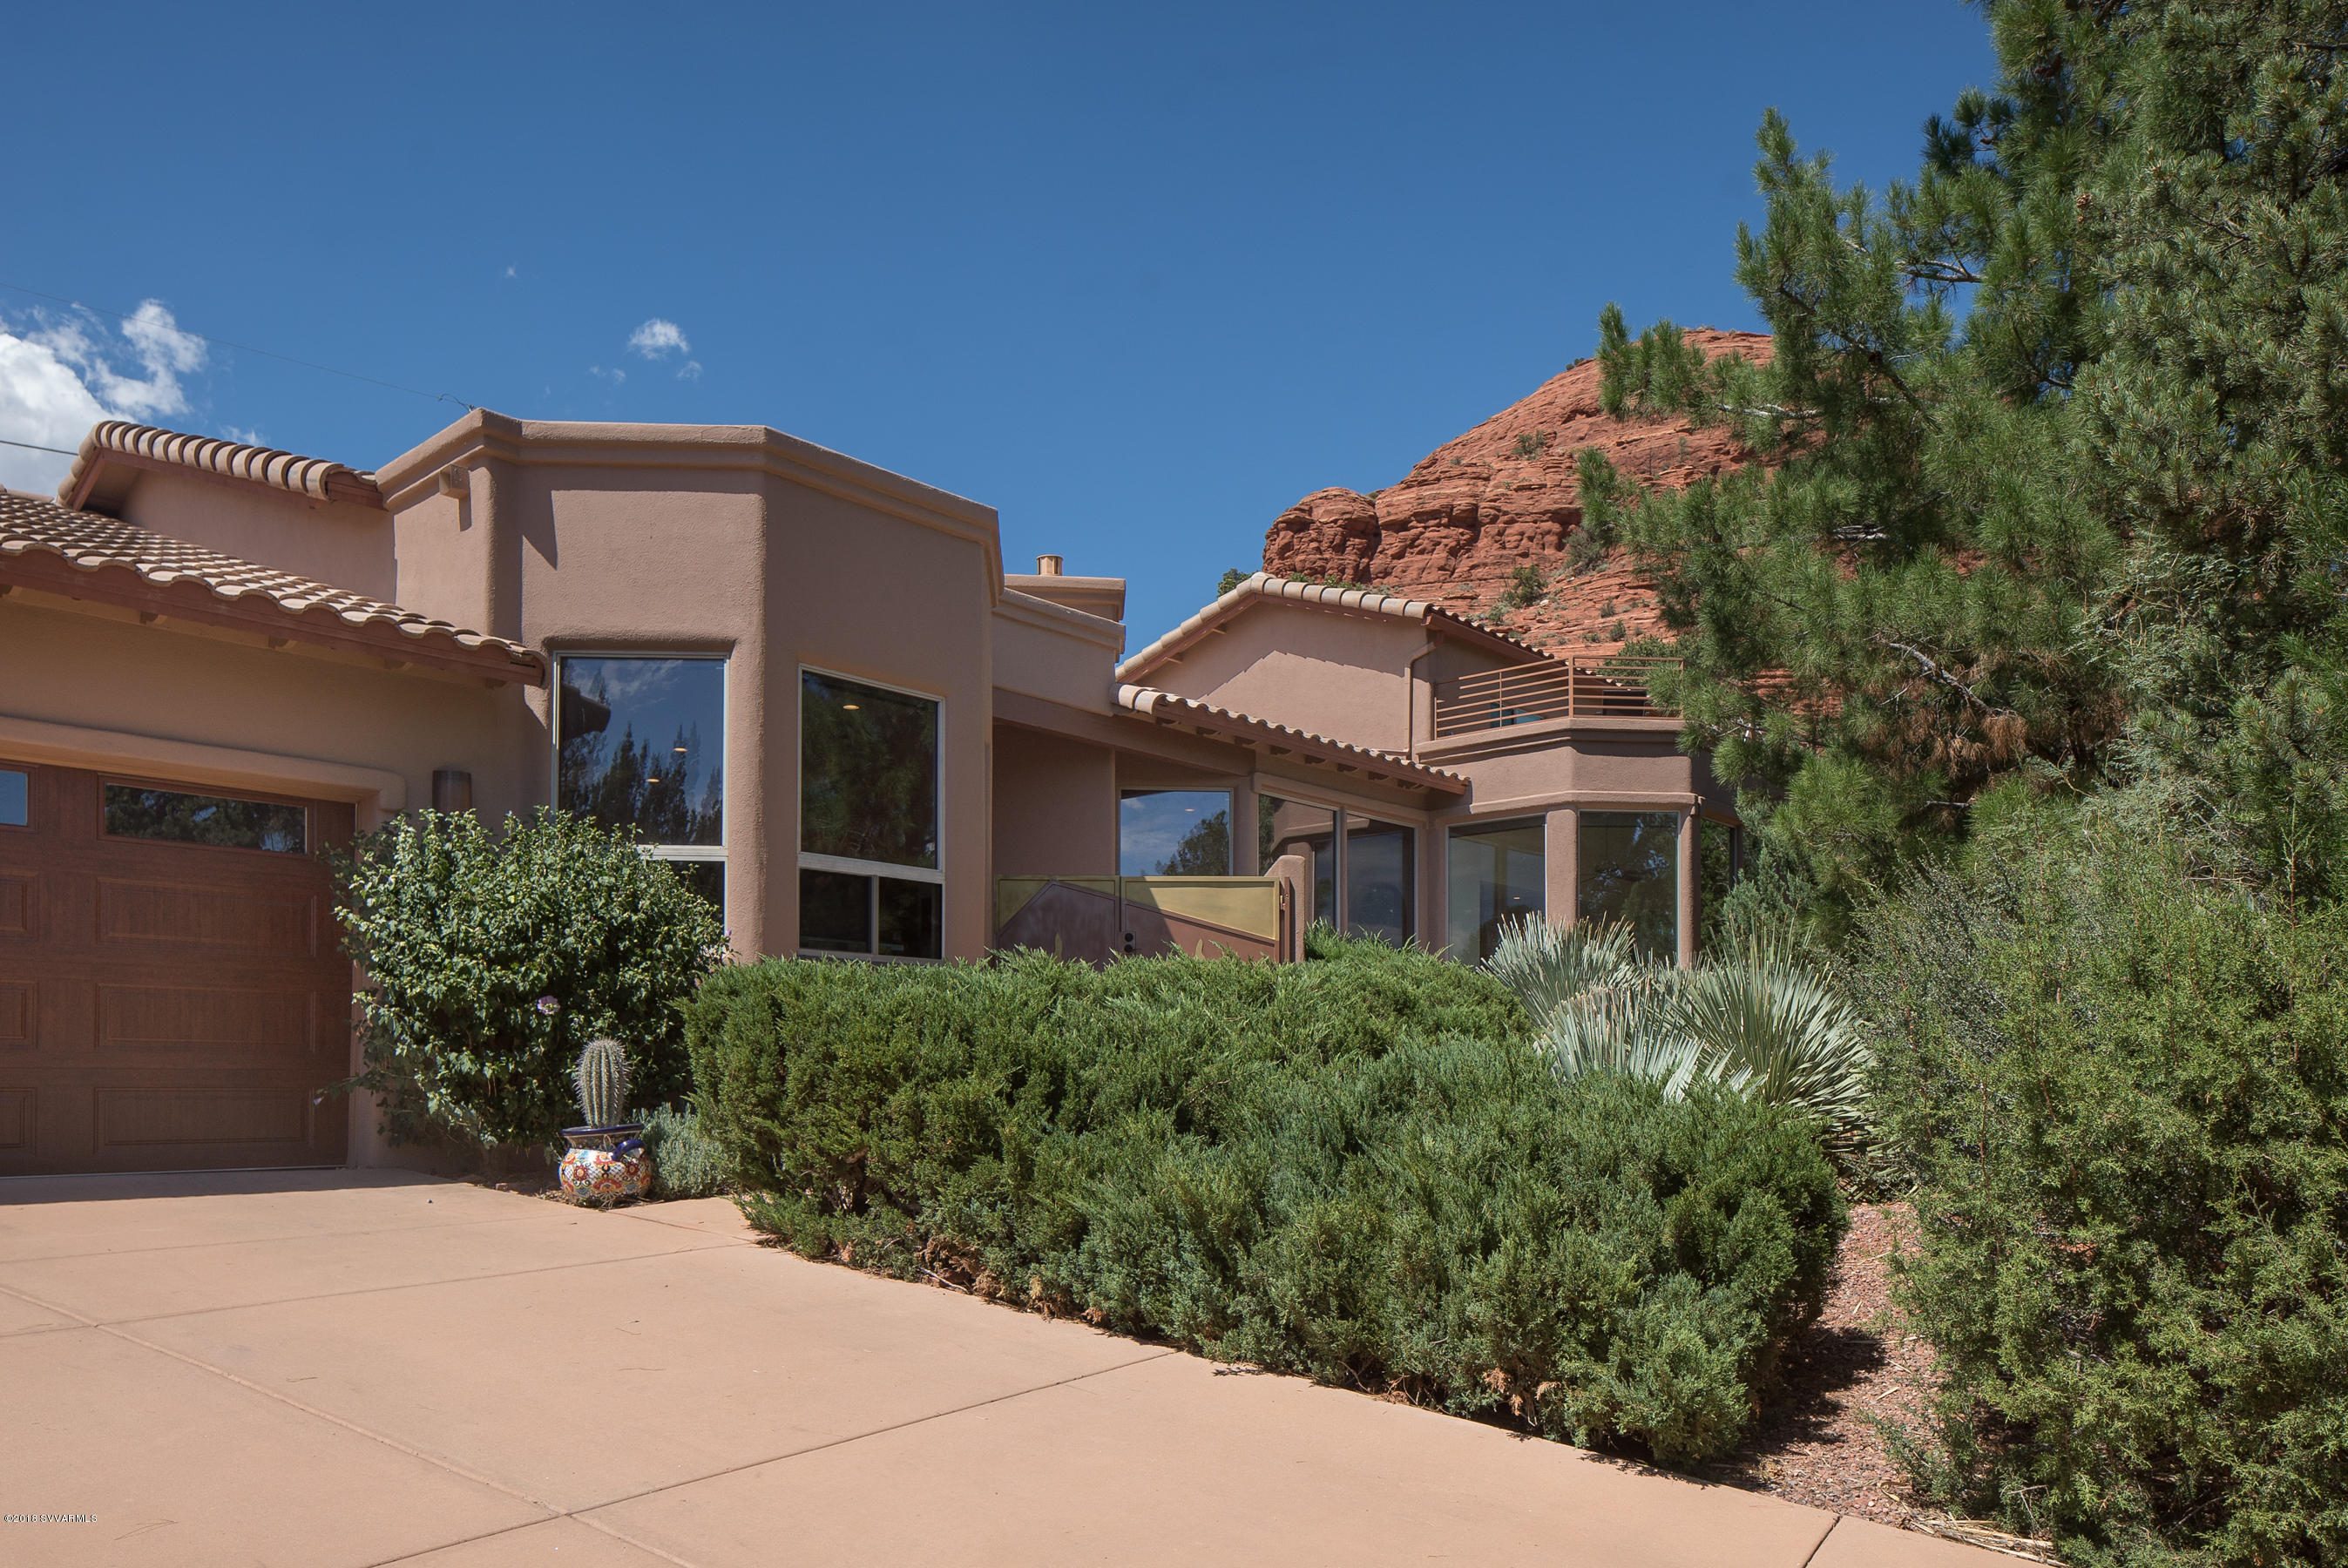 155 Stations West Drive Sedona, AZ 86336